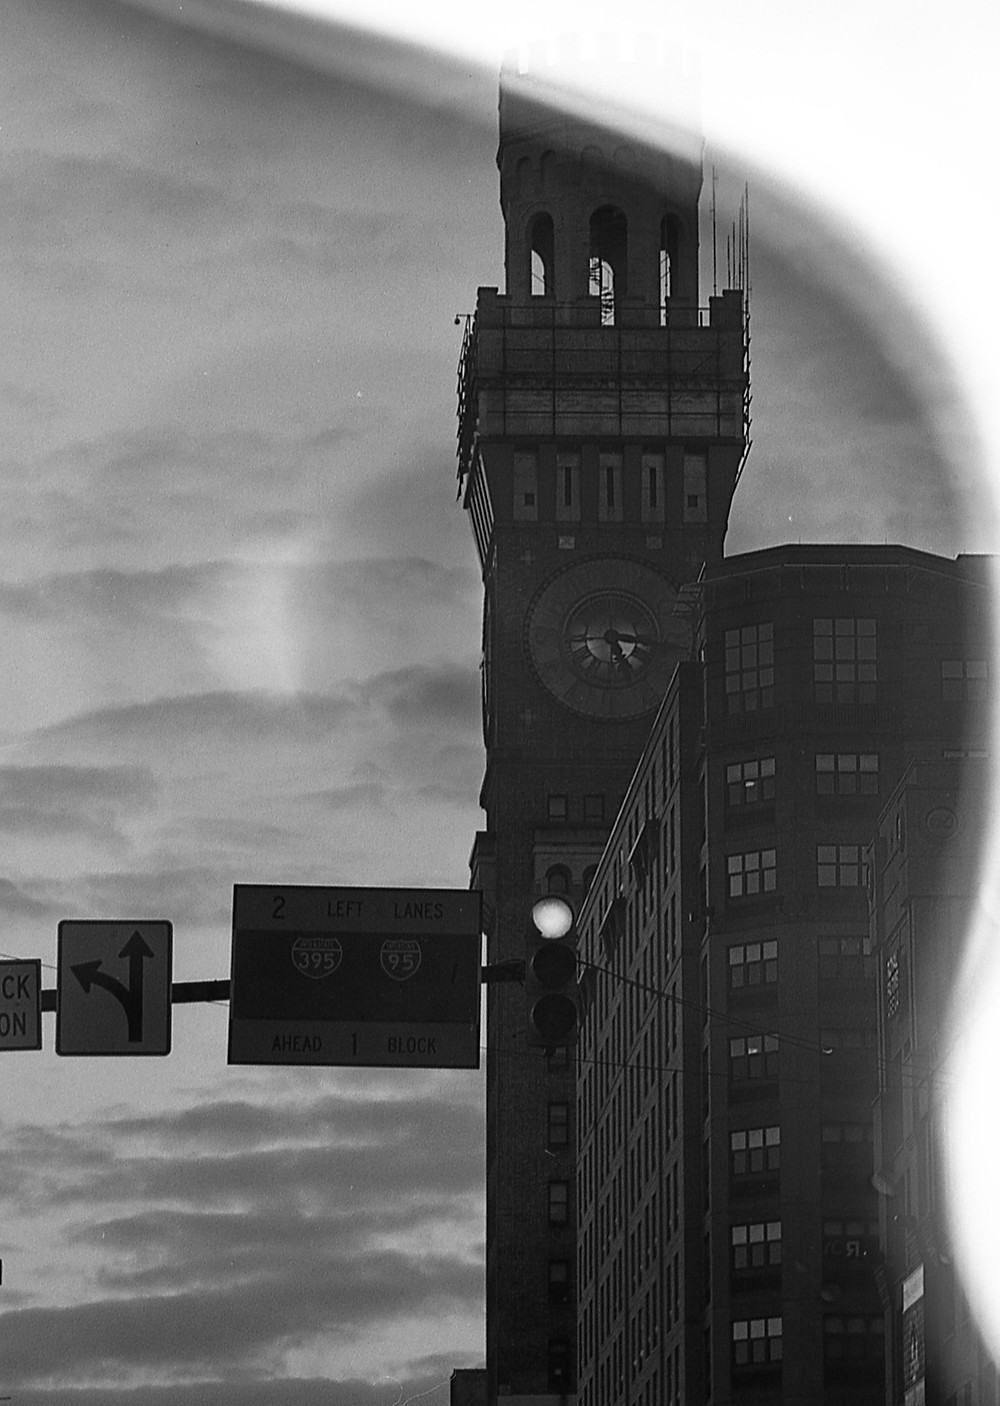 Light leak at Bromo-Seltzer Tower in Baltimore, Maryland